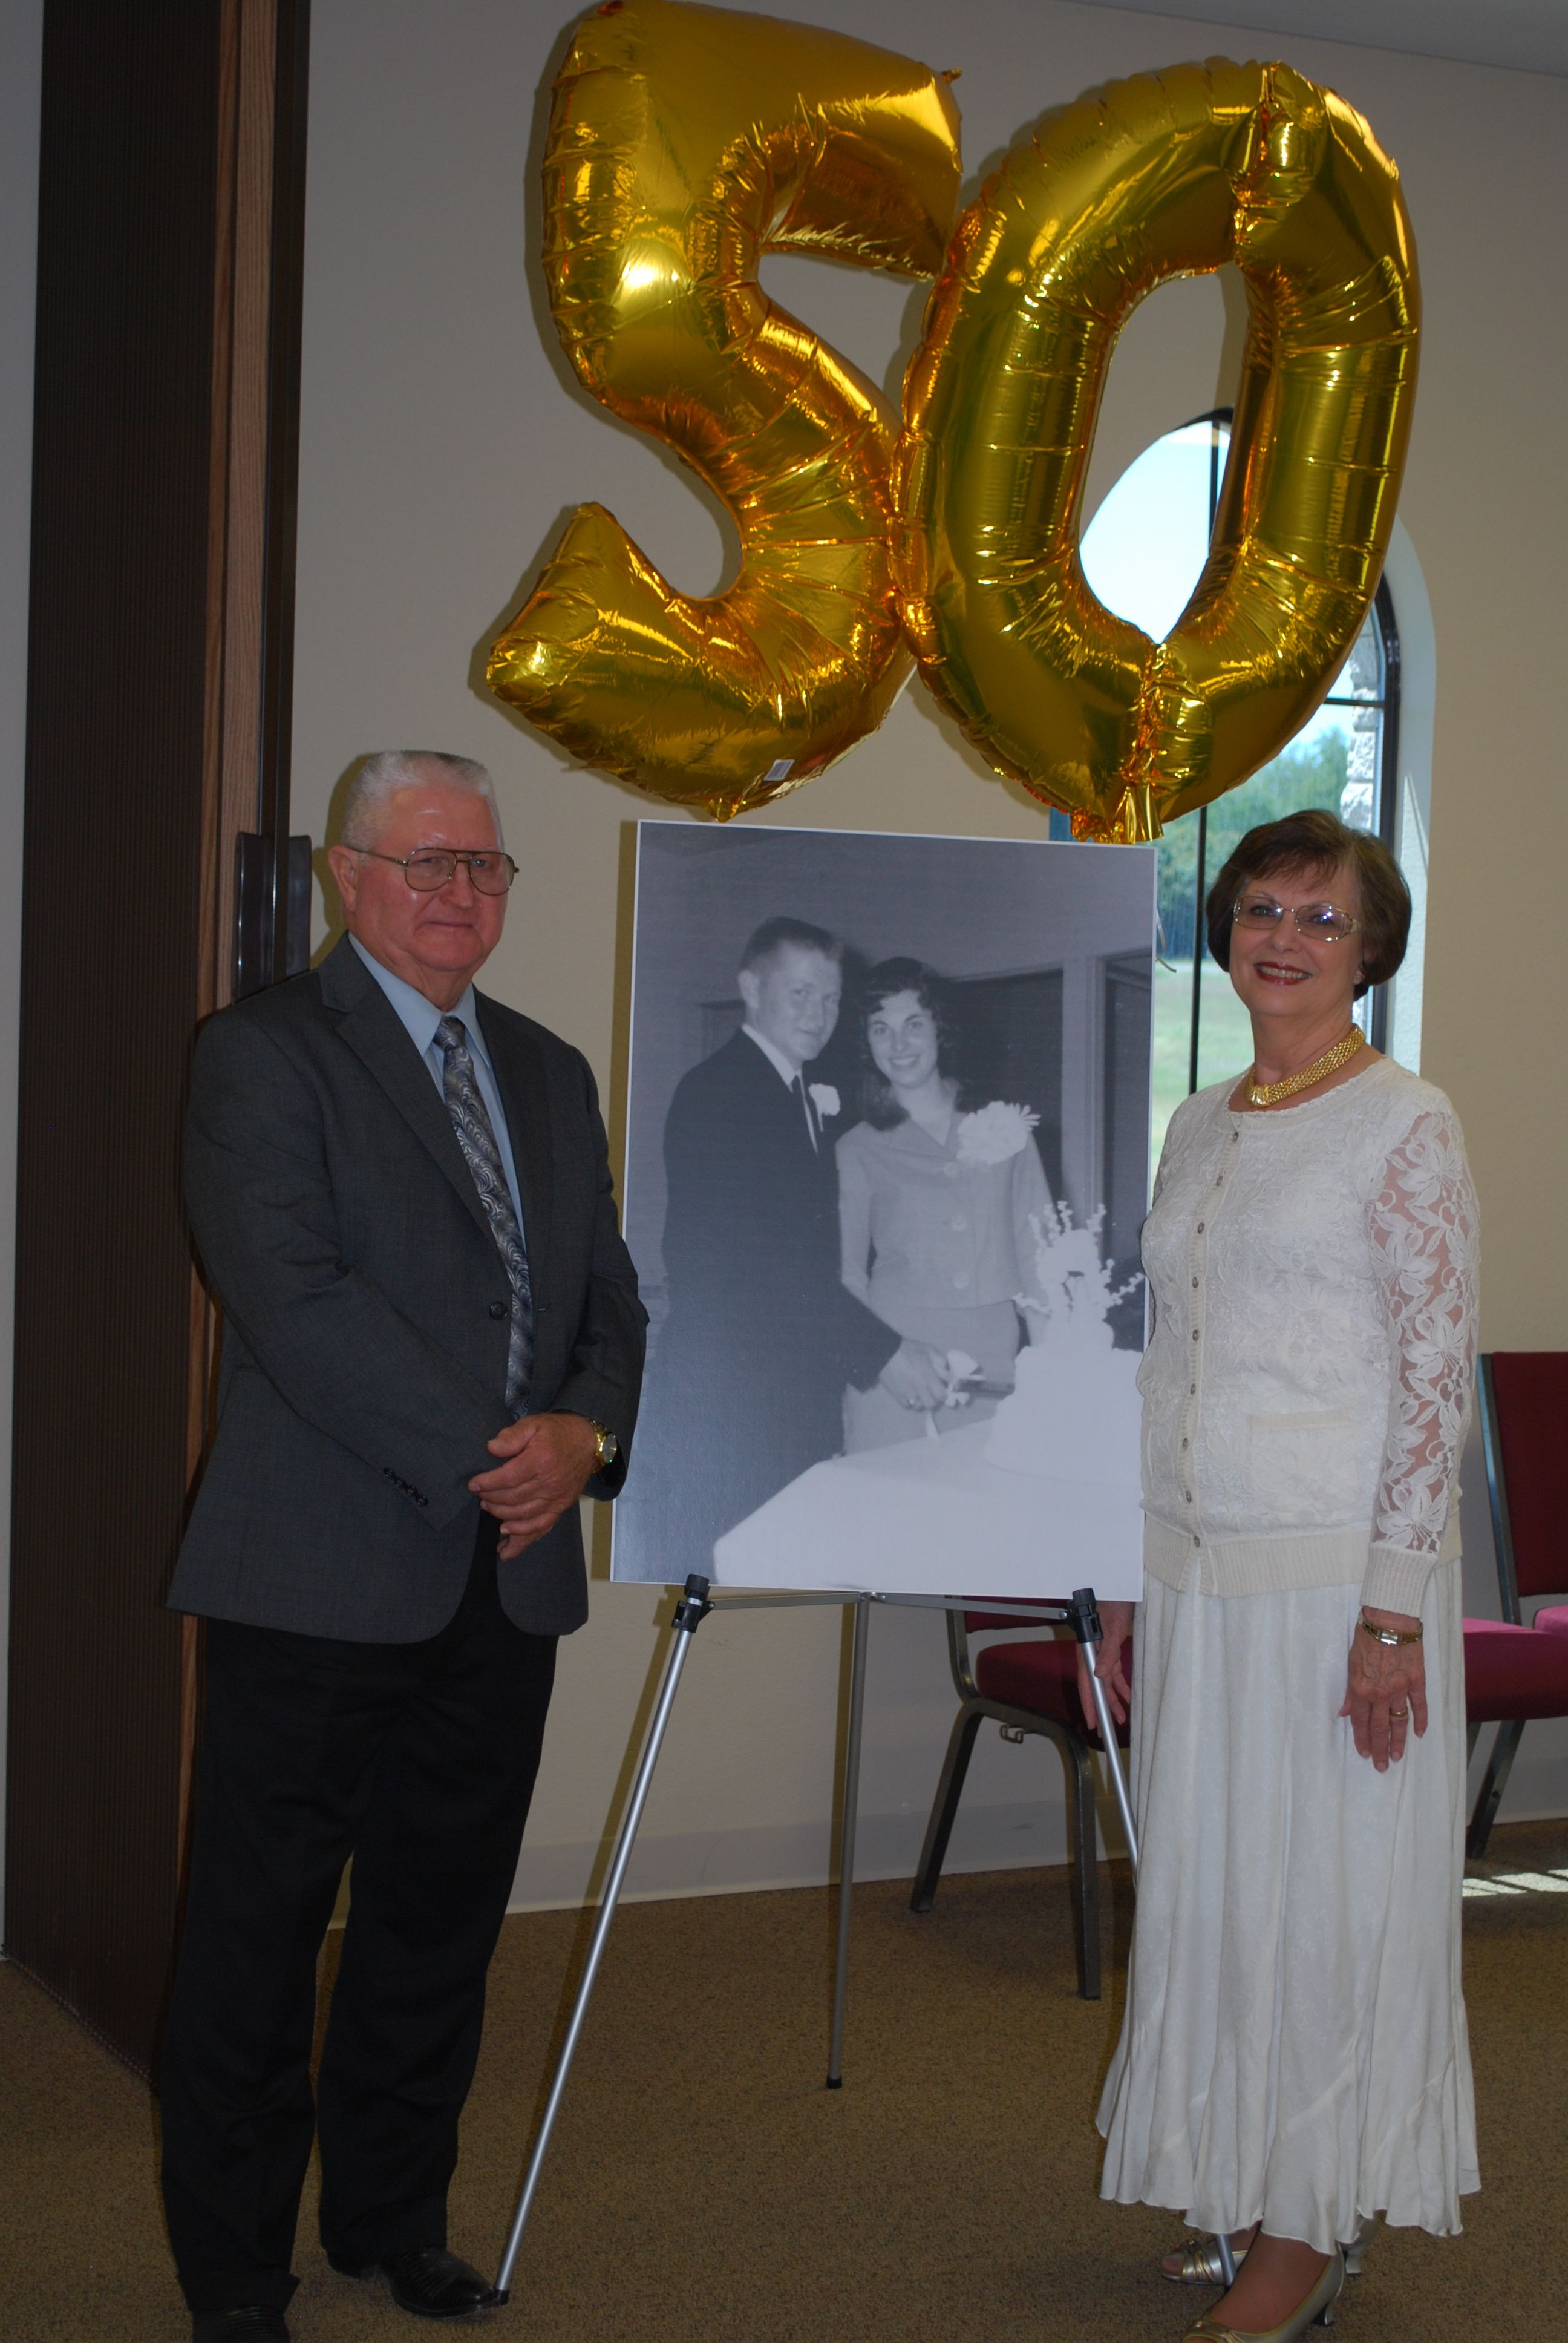 50th Wedding Anniversary Reception, this was my favorite